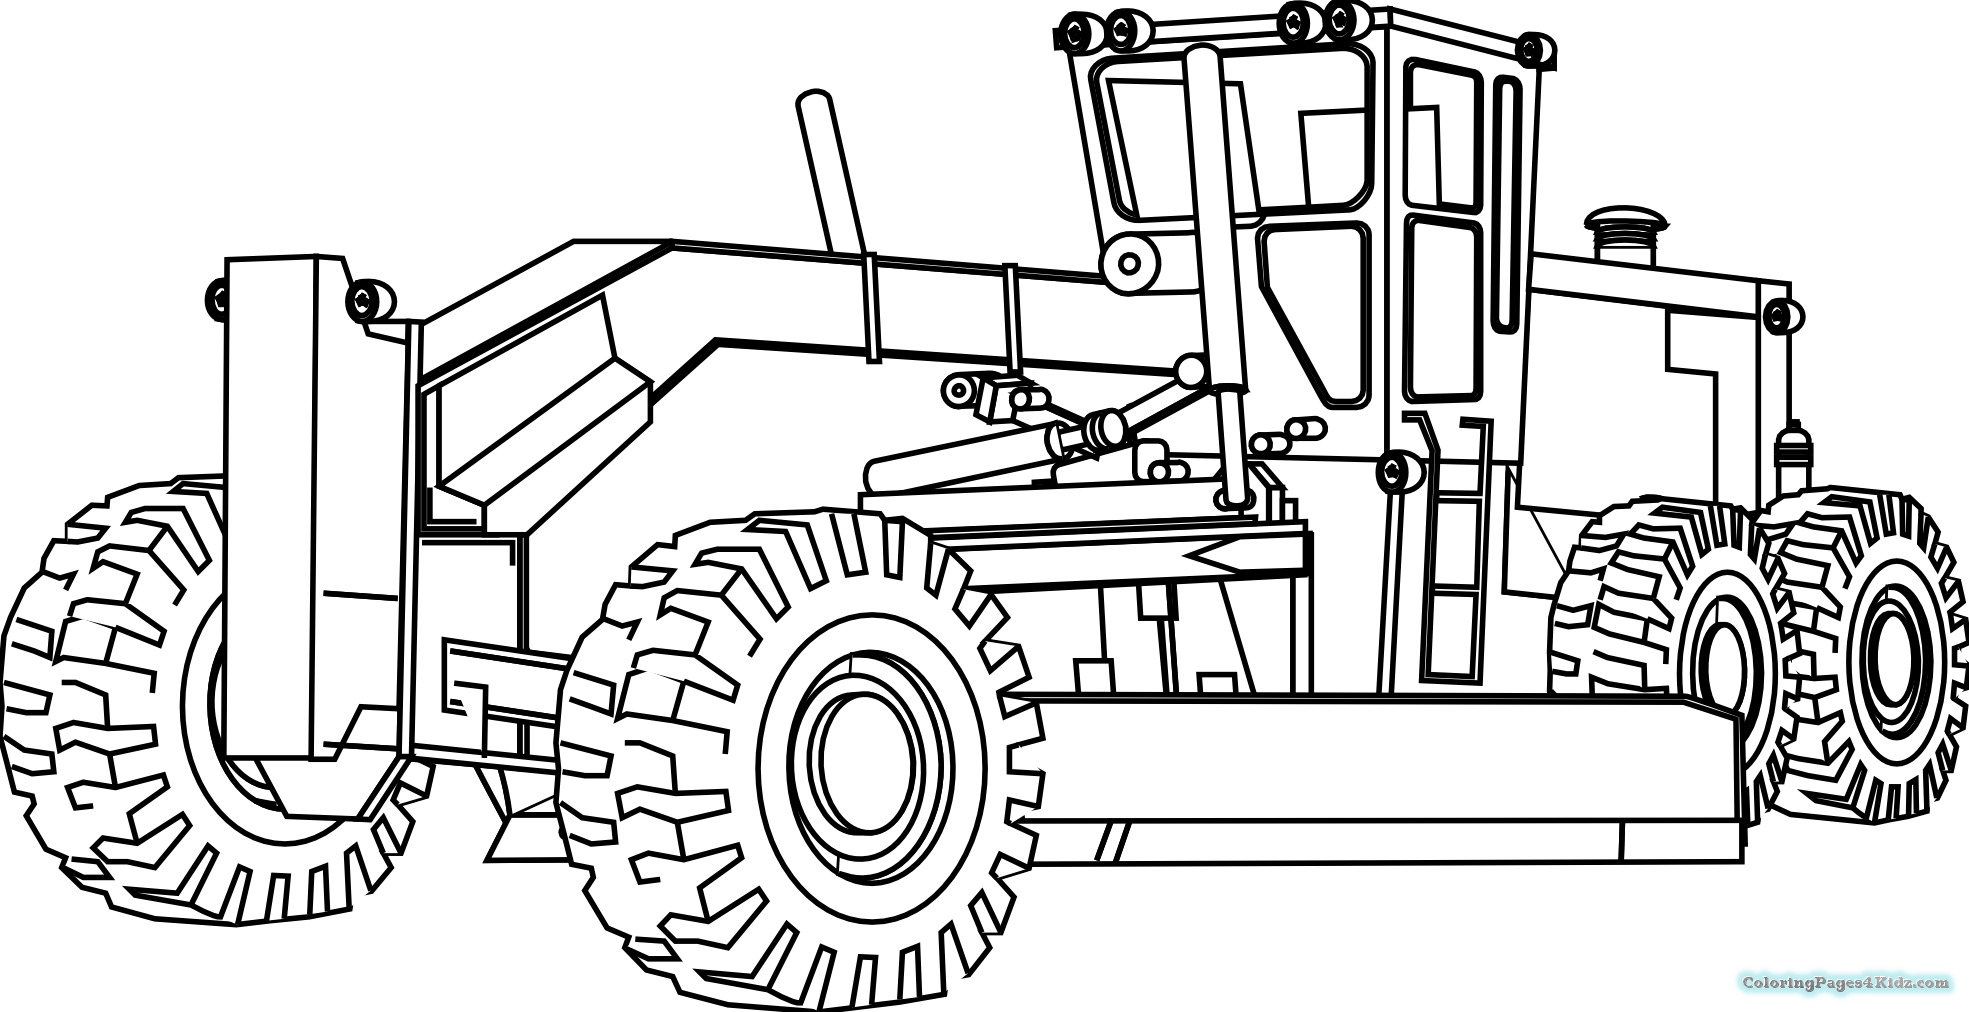 tractor pictures to color kids tractor a coloring pages coloring pages for kids pictures color to tractor